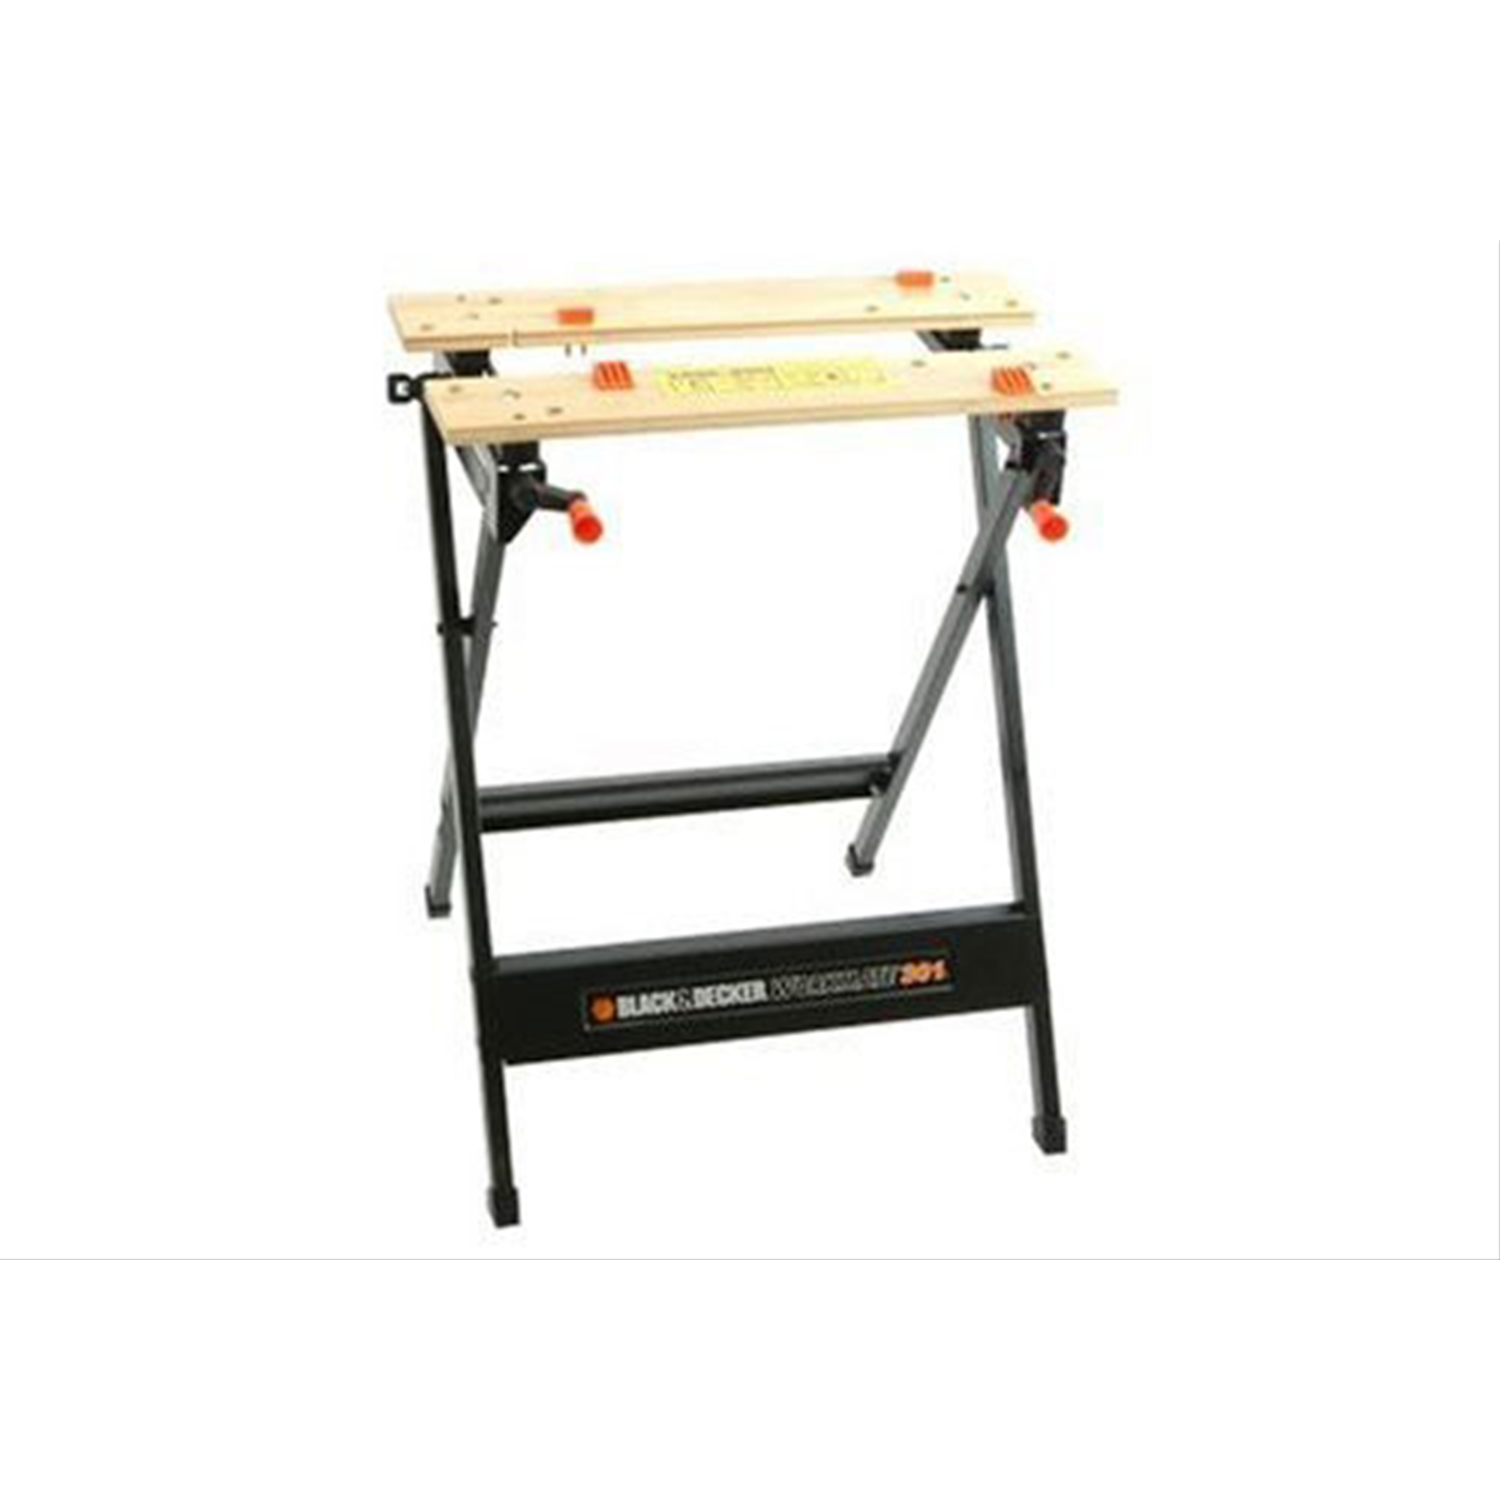 Image of Black And Decker Wm301 Workmate